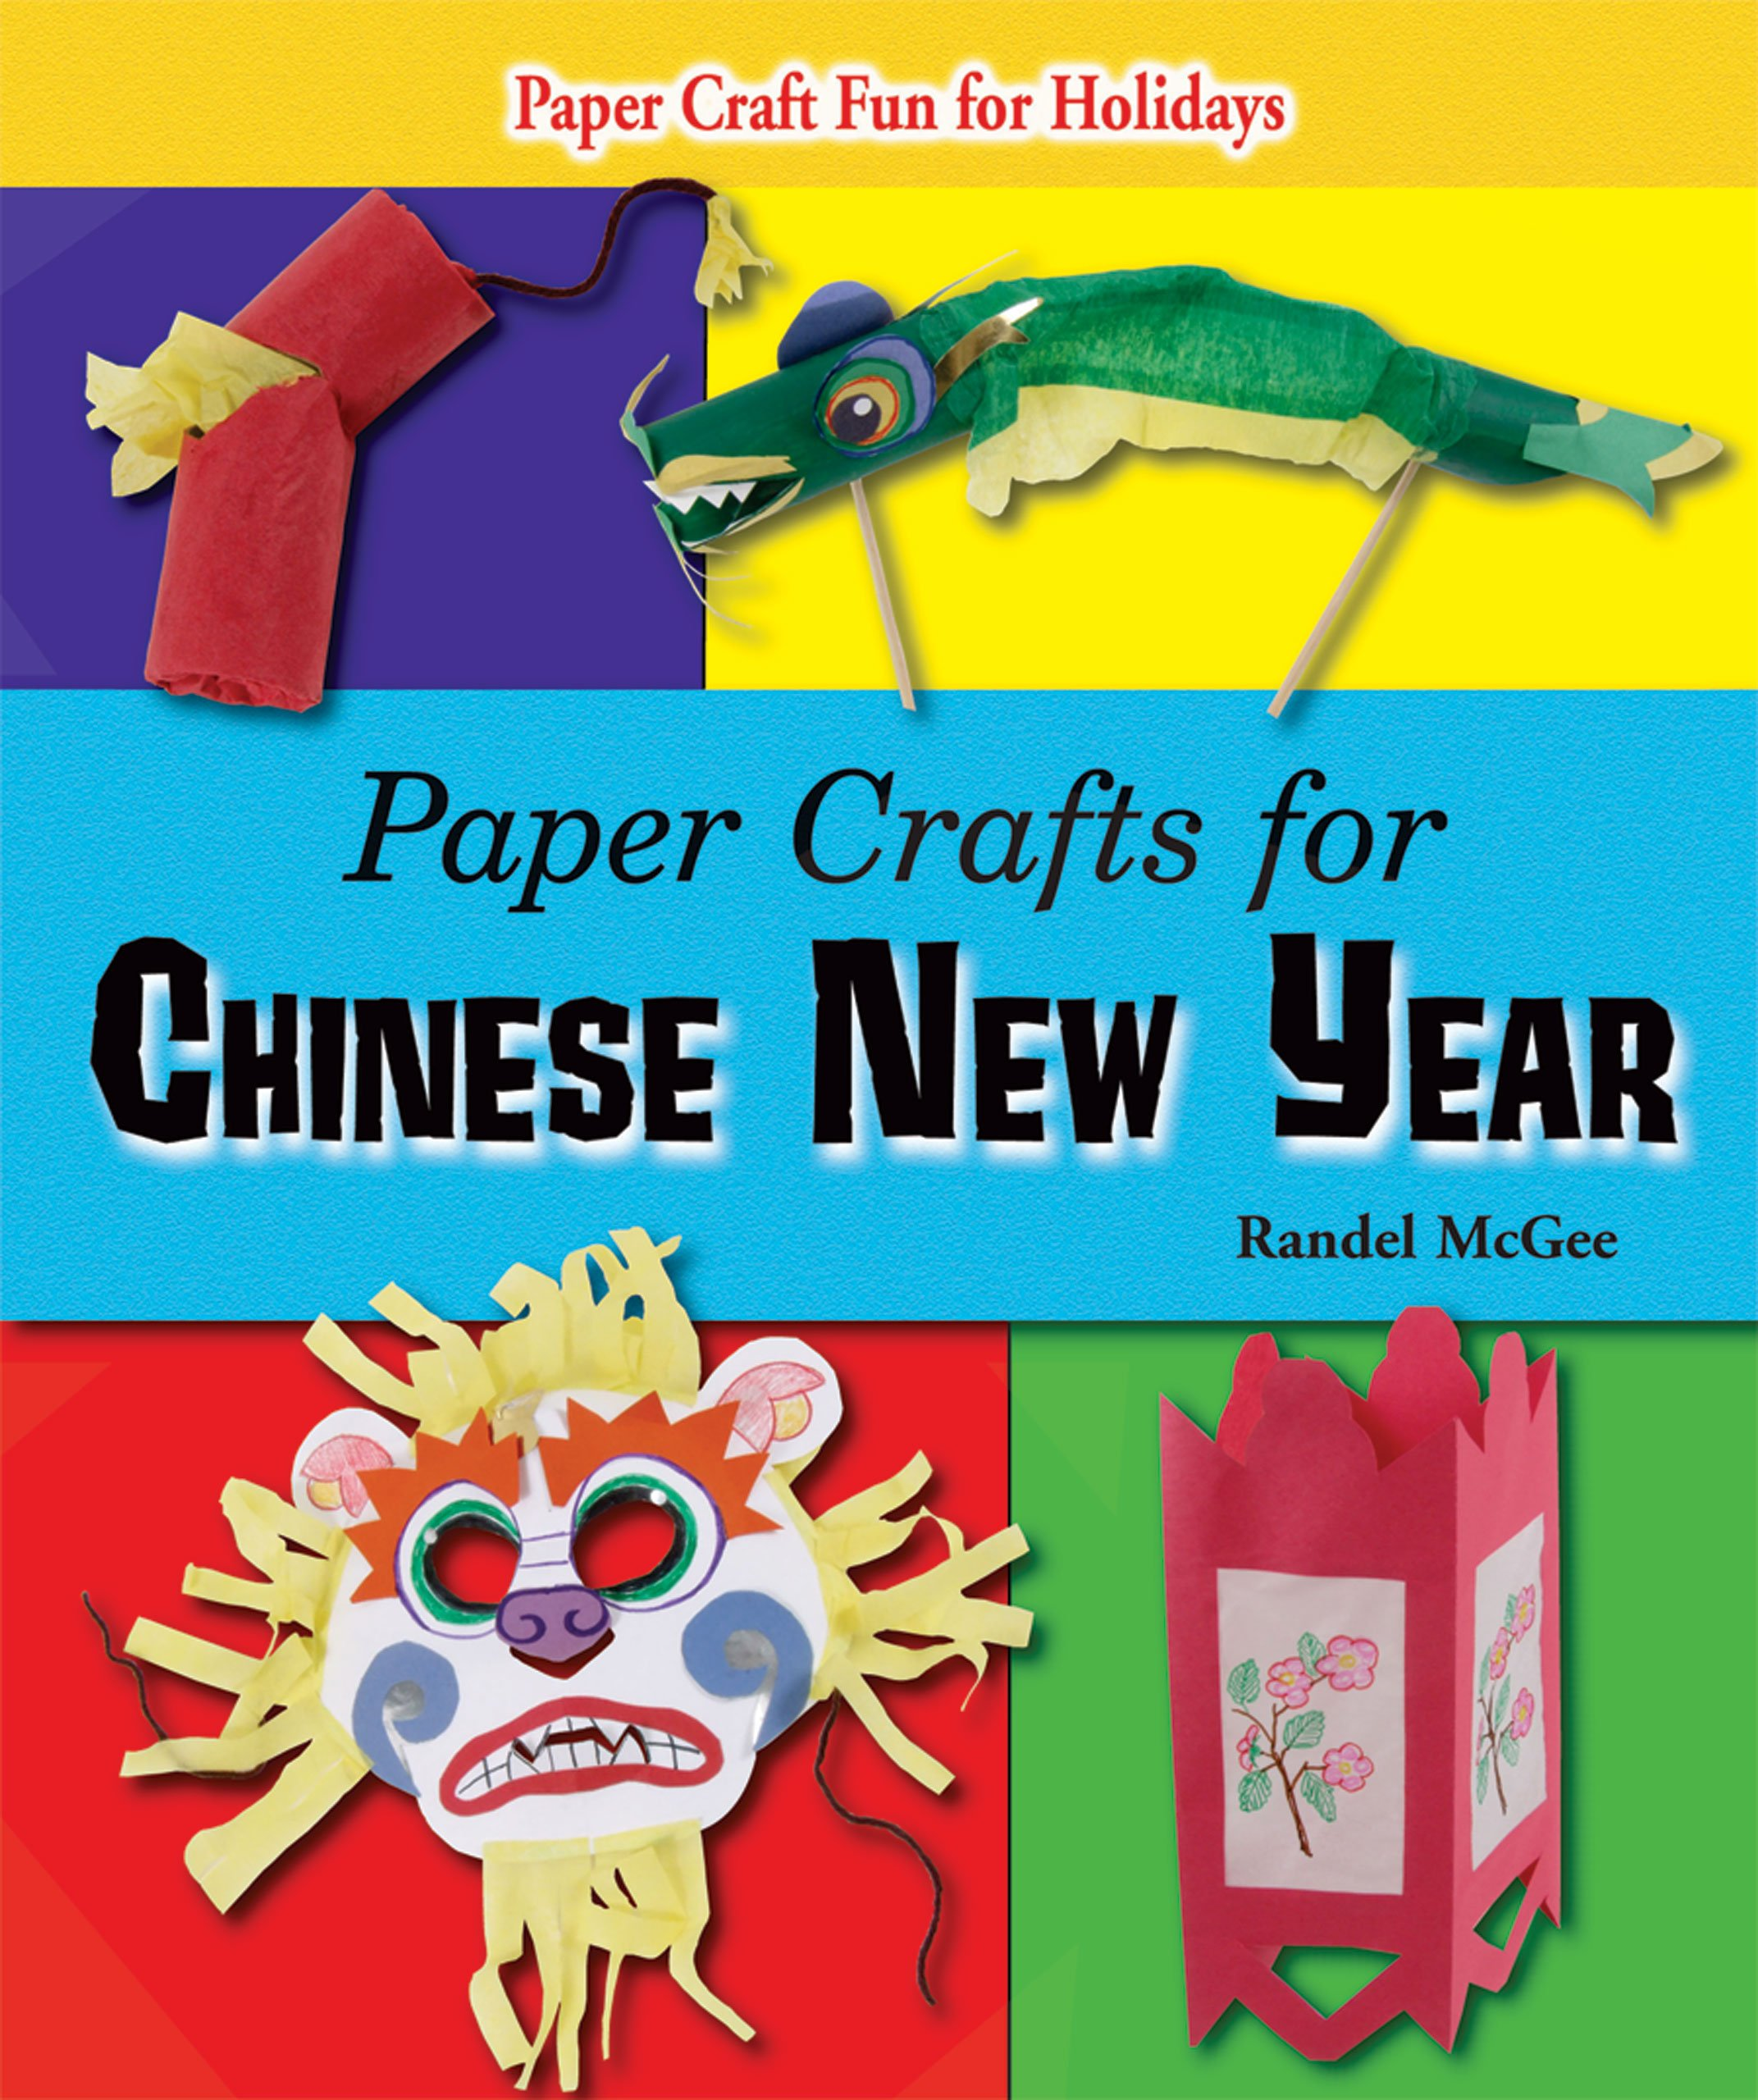 Paper Crafts for Chinese New Year (Paper Craft Fun for Holidays) by Enslow Publishers, Inc.